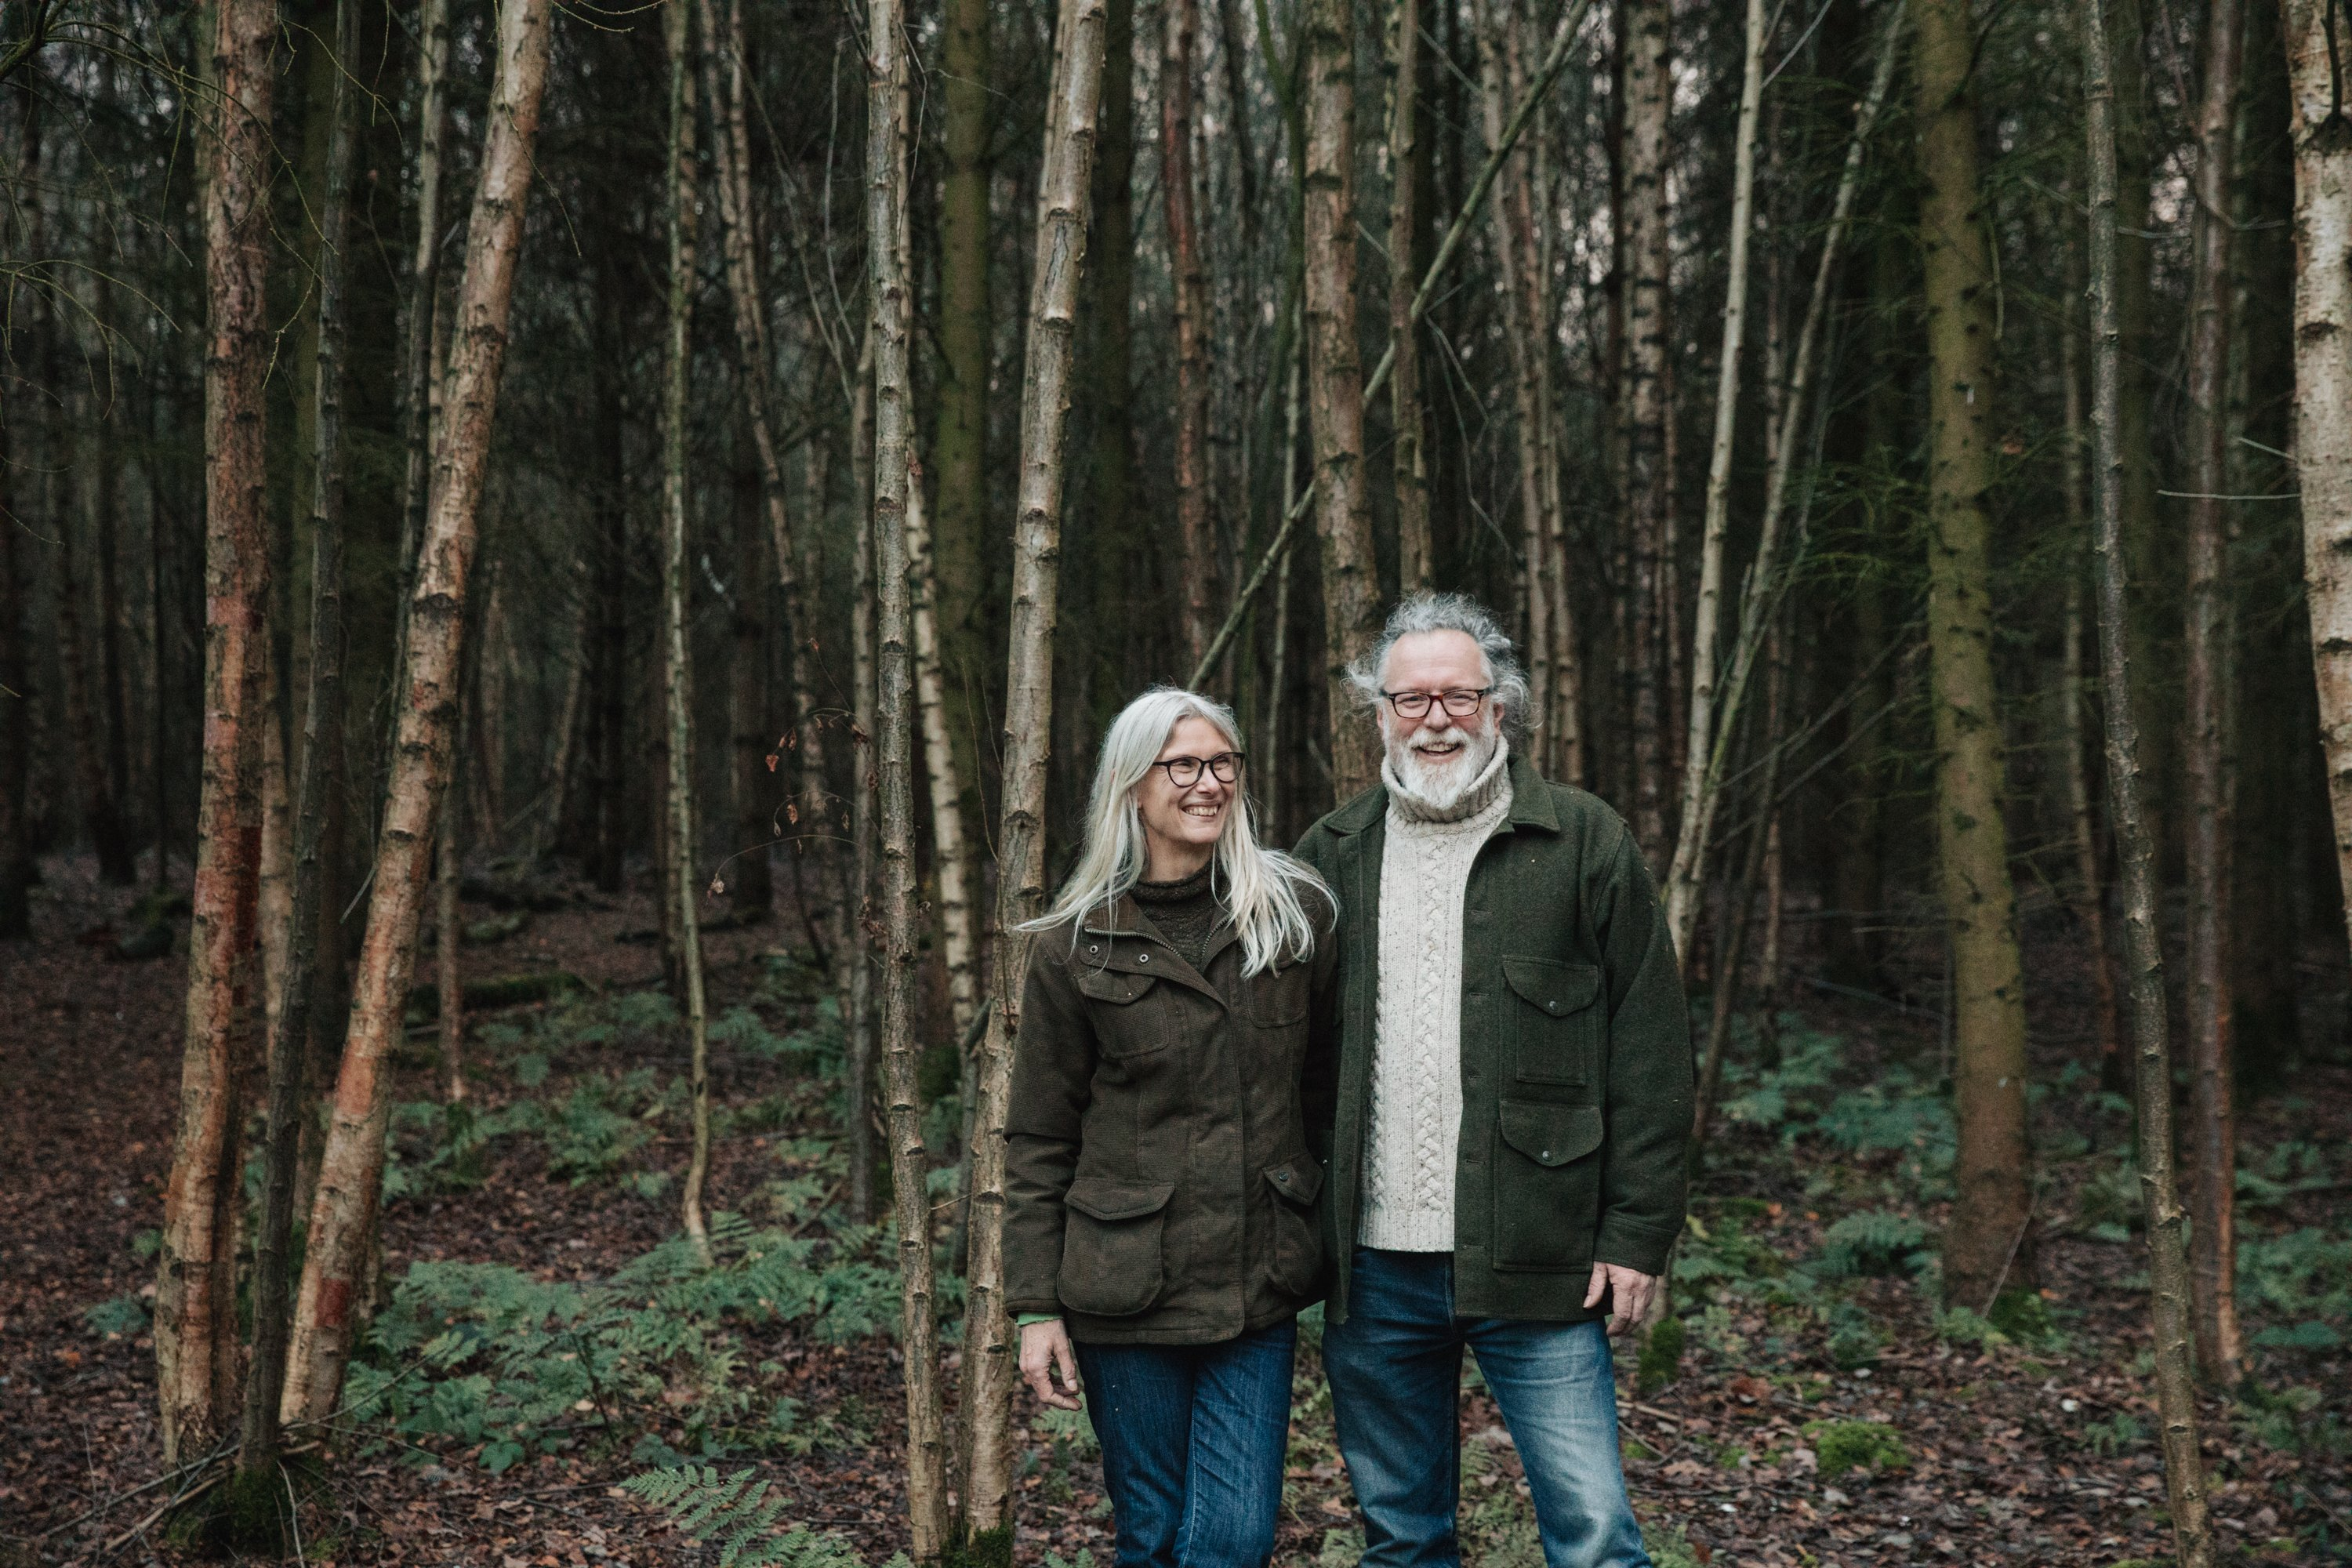 Bax Botanics alcohol free spirits founders Chris and Rose in there woodland.